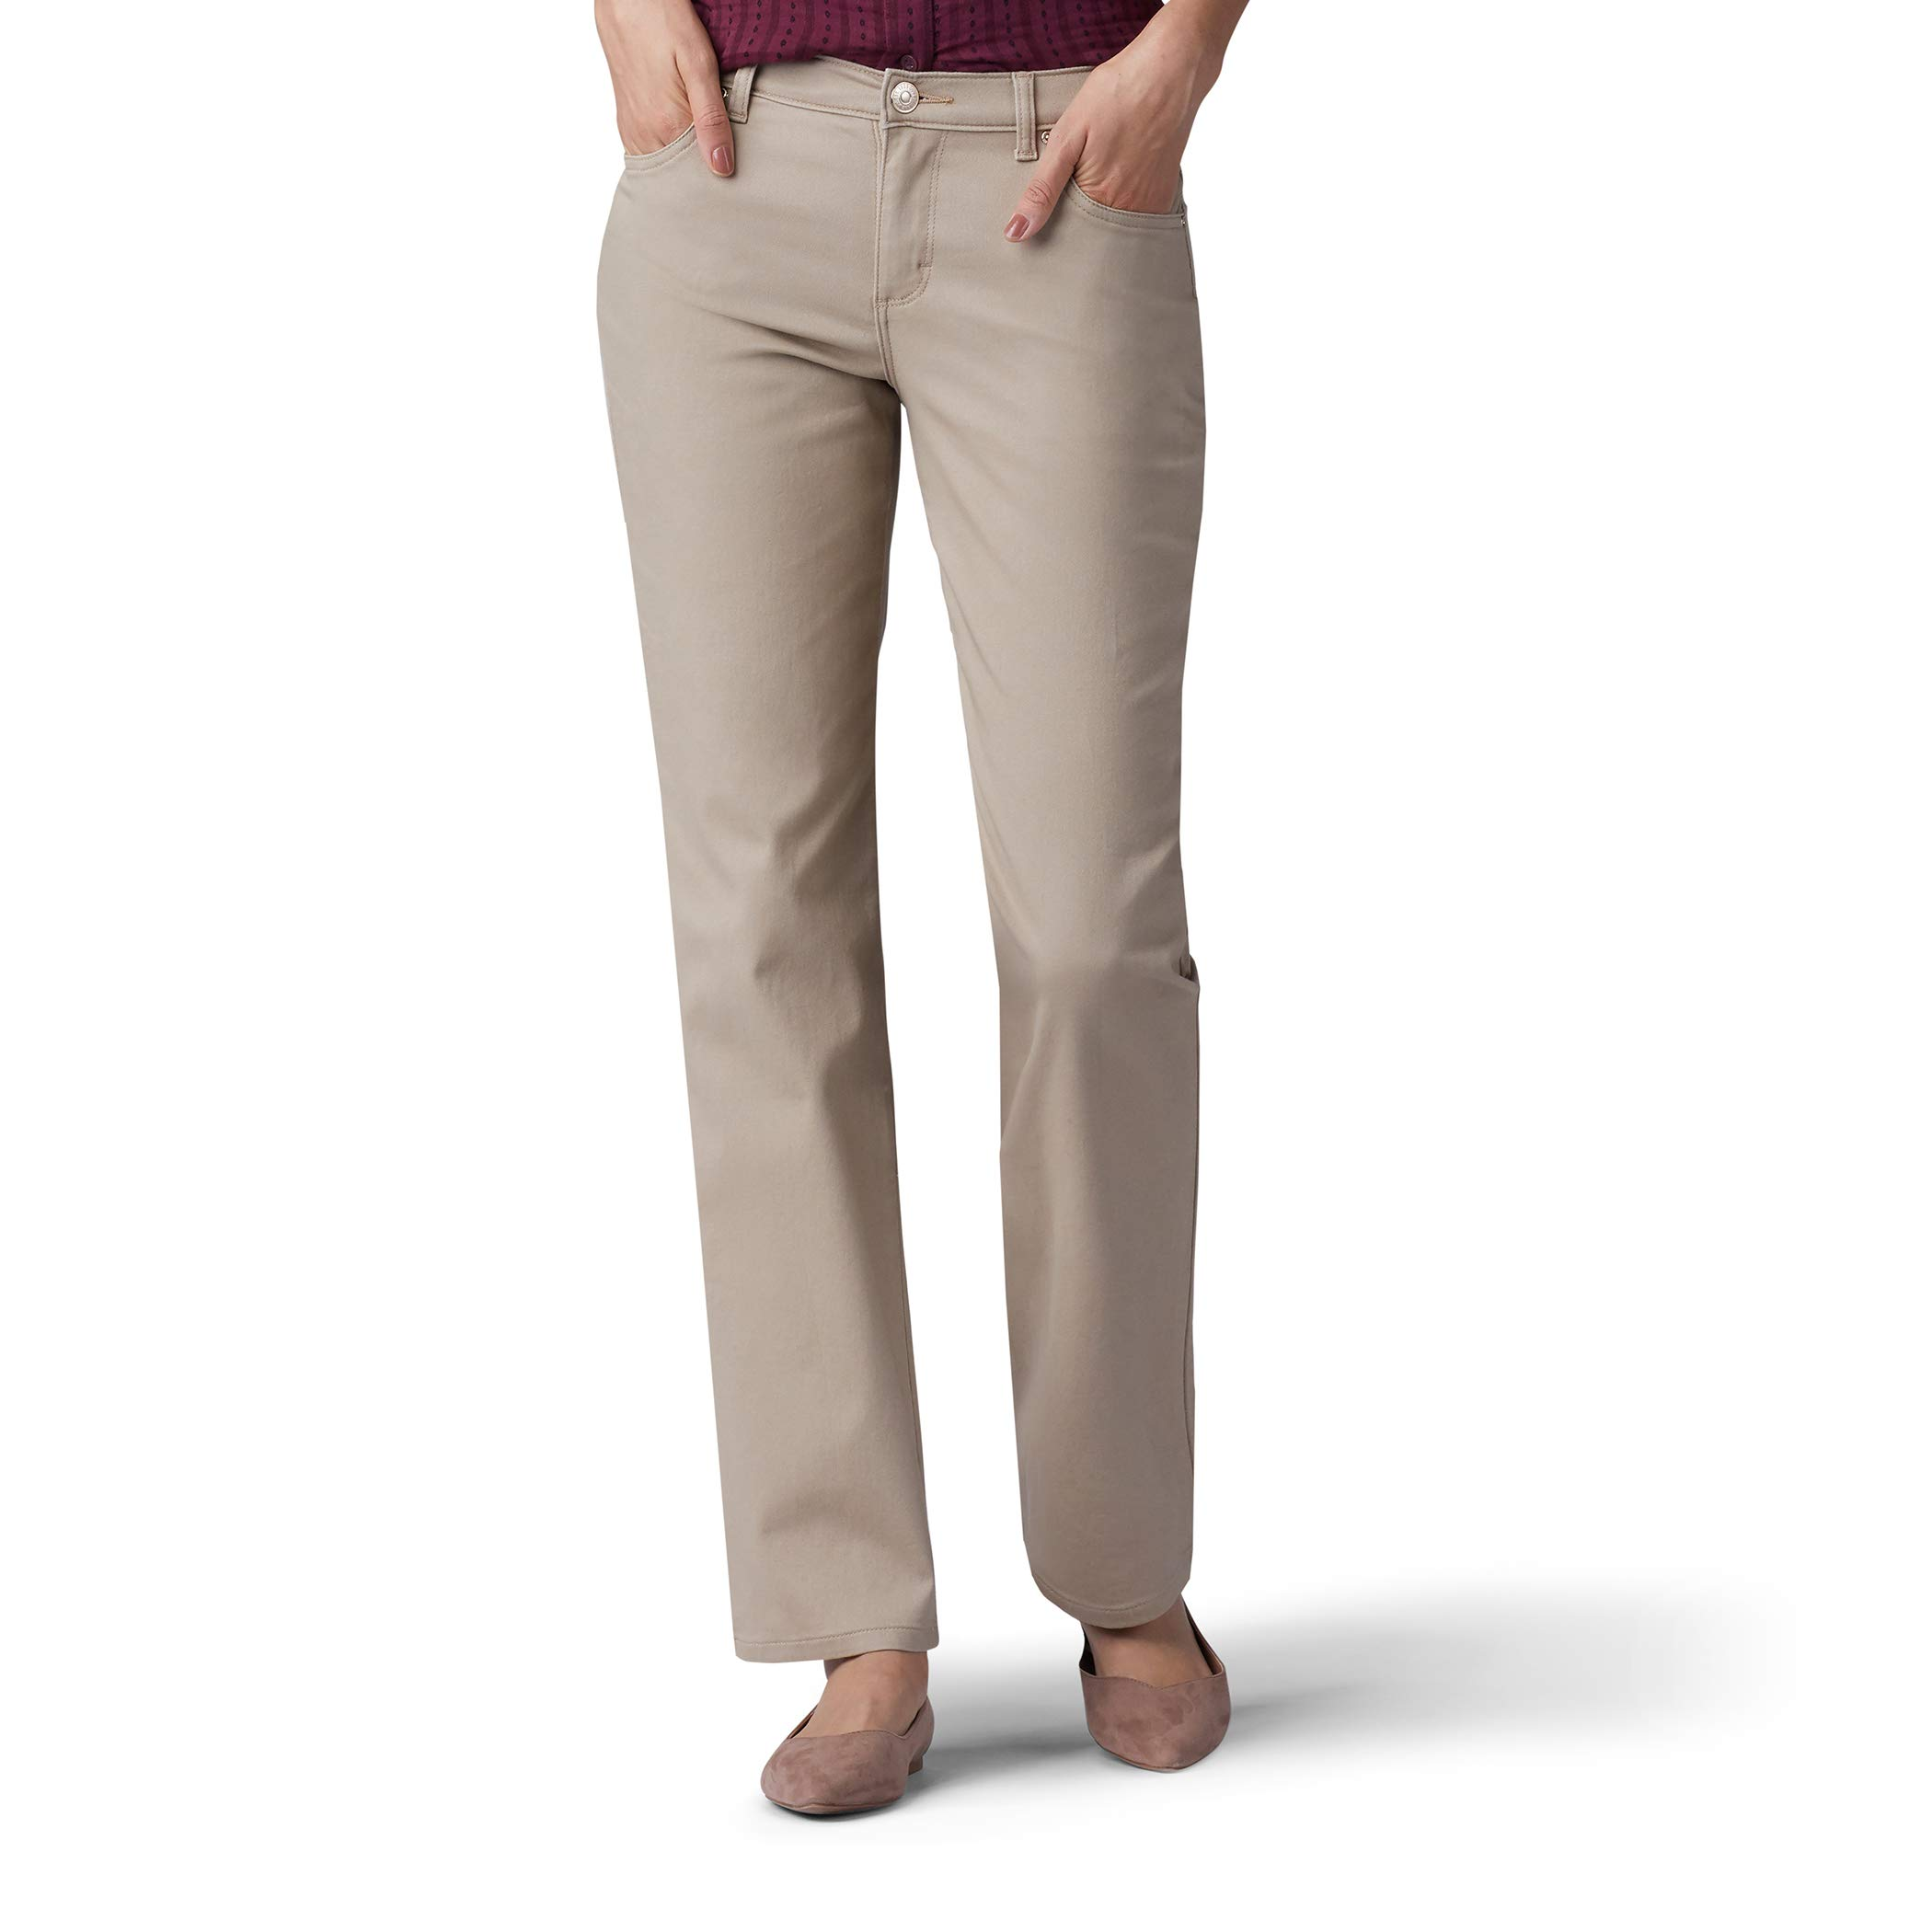 LEE Women's Relaxed Fit Straight Leg